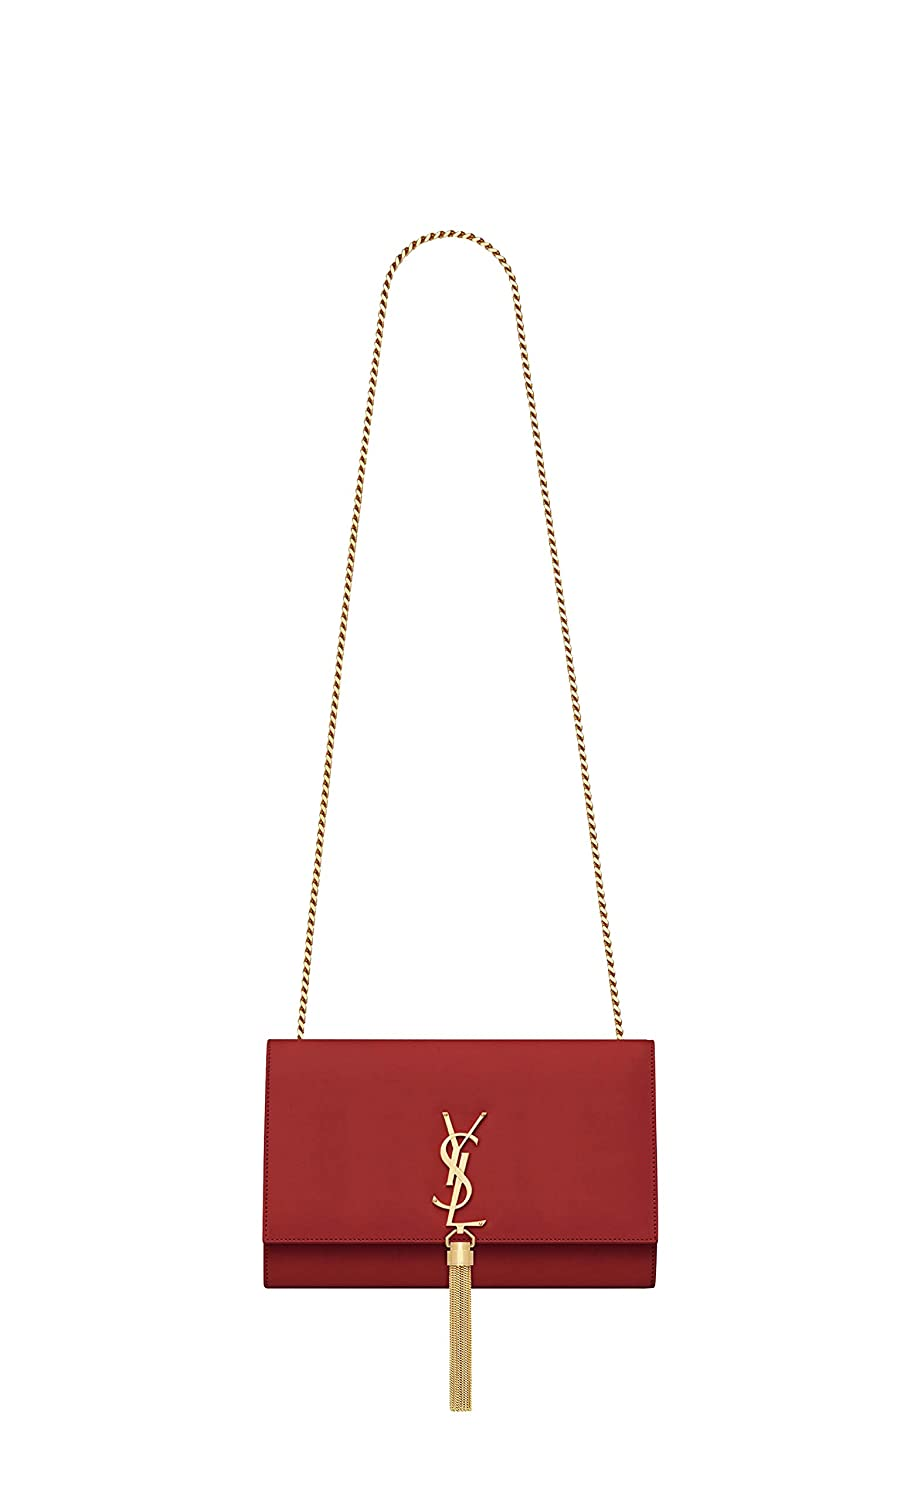 10d2eb0f8aaaa Paper Yves Saint Laurent monogram kate with tassel kate medium with tassel  in smooth leather women Shoulder Bag Classic New (red)  Handbags  Amazon.com